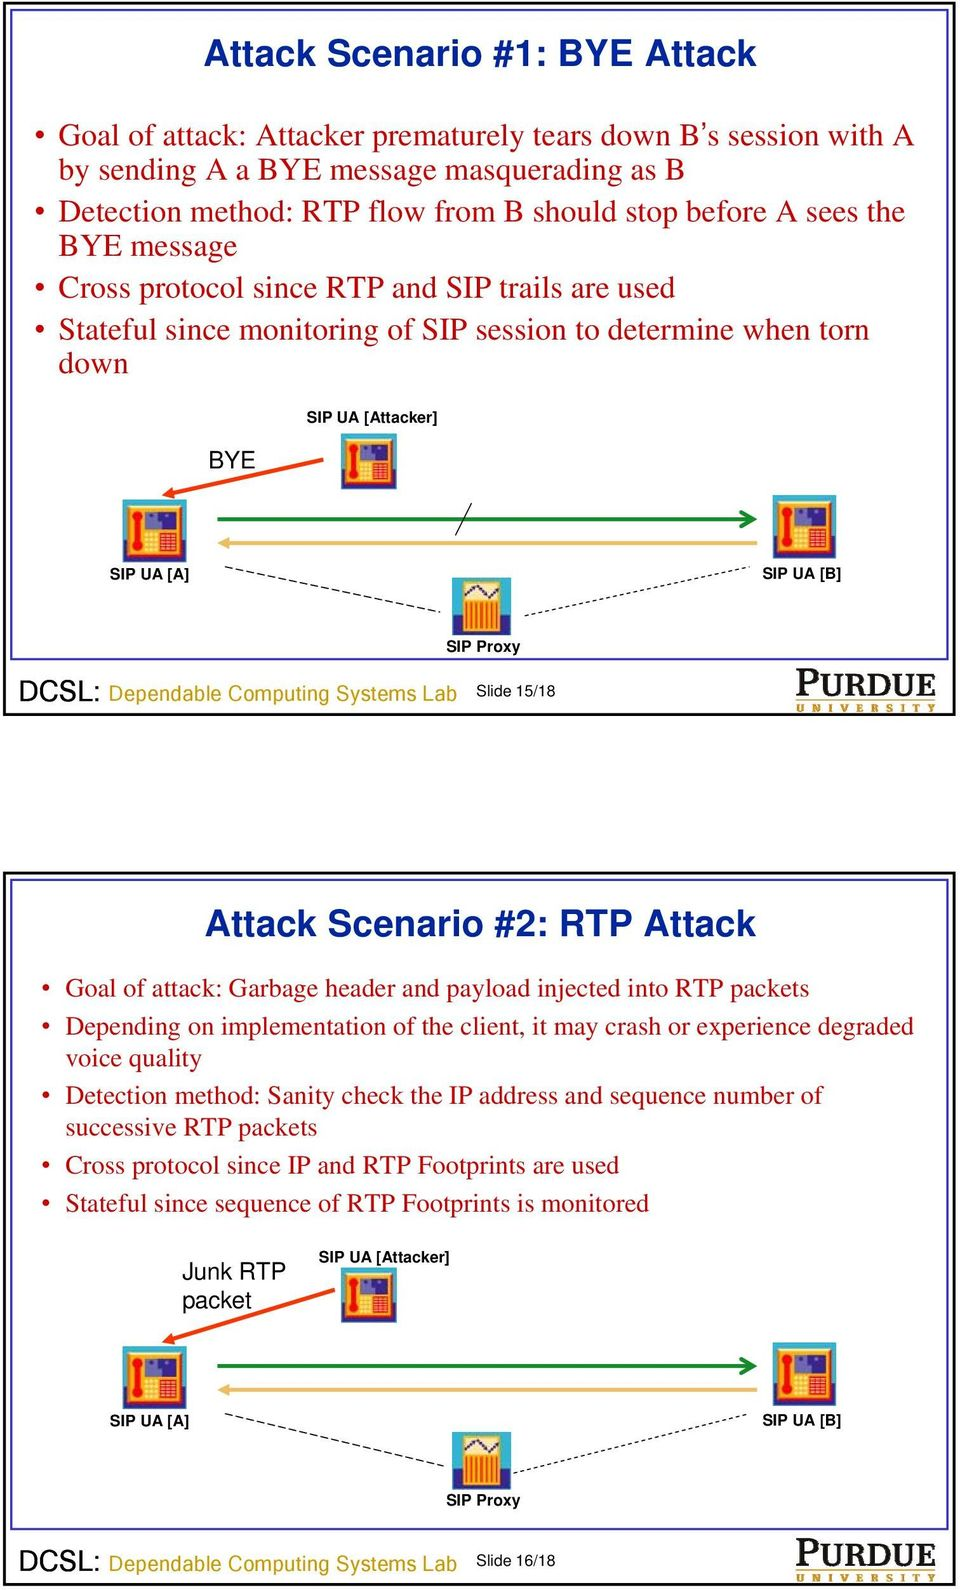 15/18 Attack Scenario #2: RTP Attack Goal of attack: Garbage header and payload injected into RTP packets Depending on implementation of the client, it may crash or experience degraded voice quality